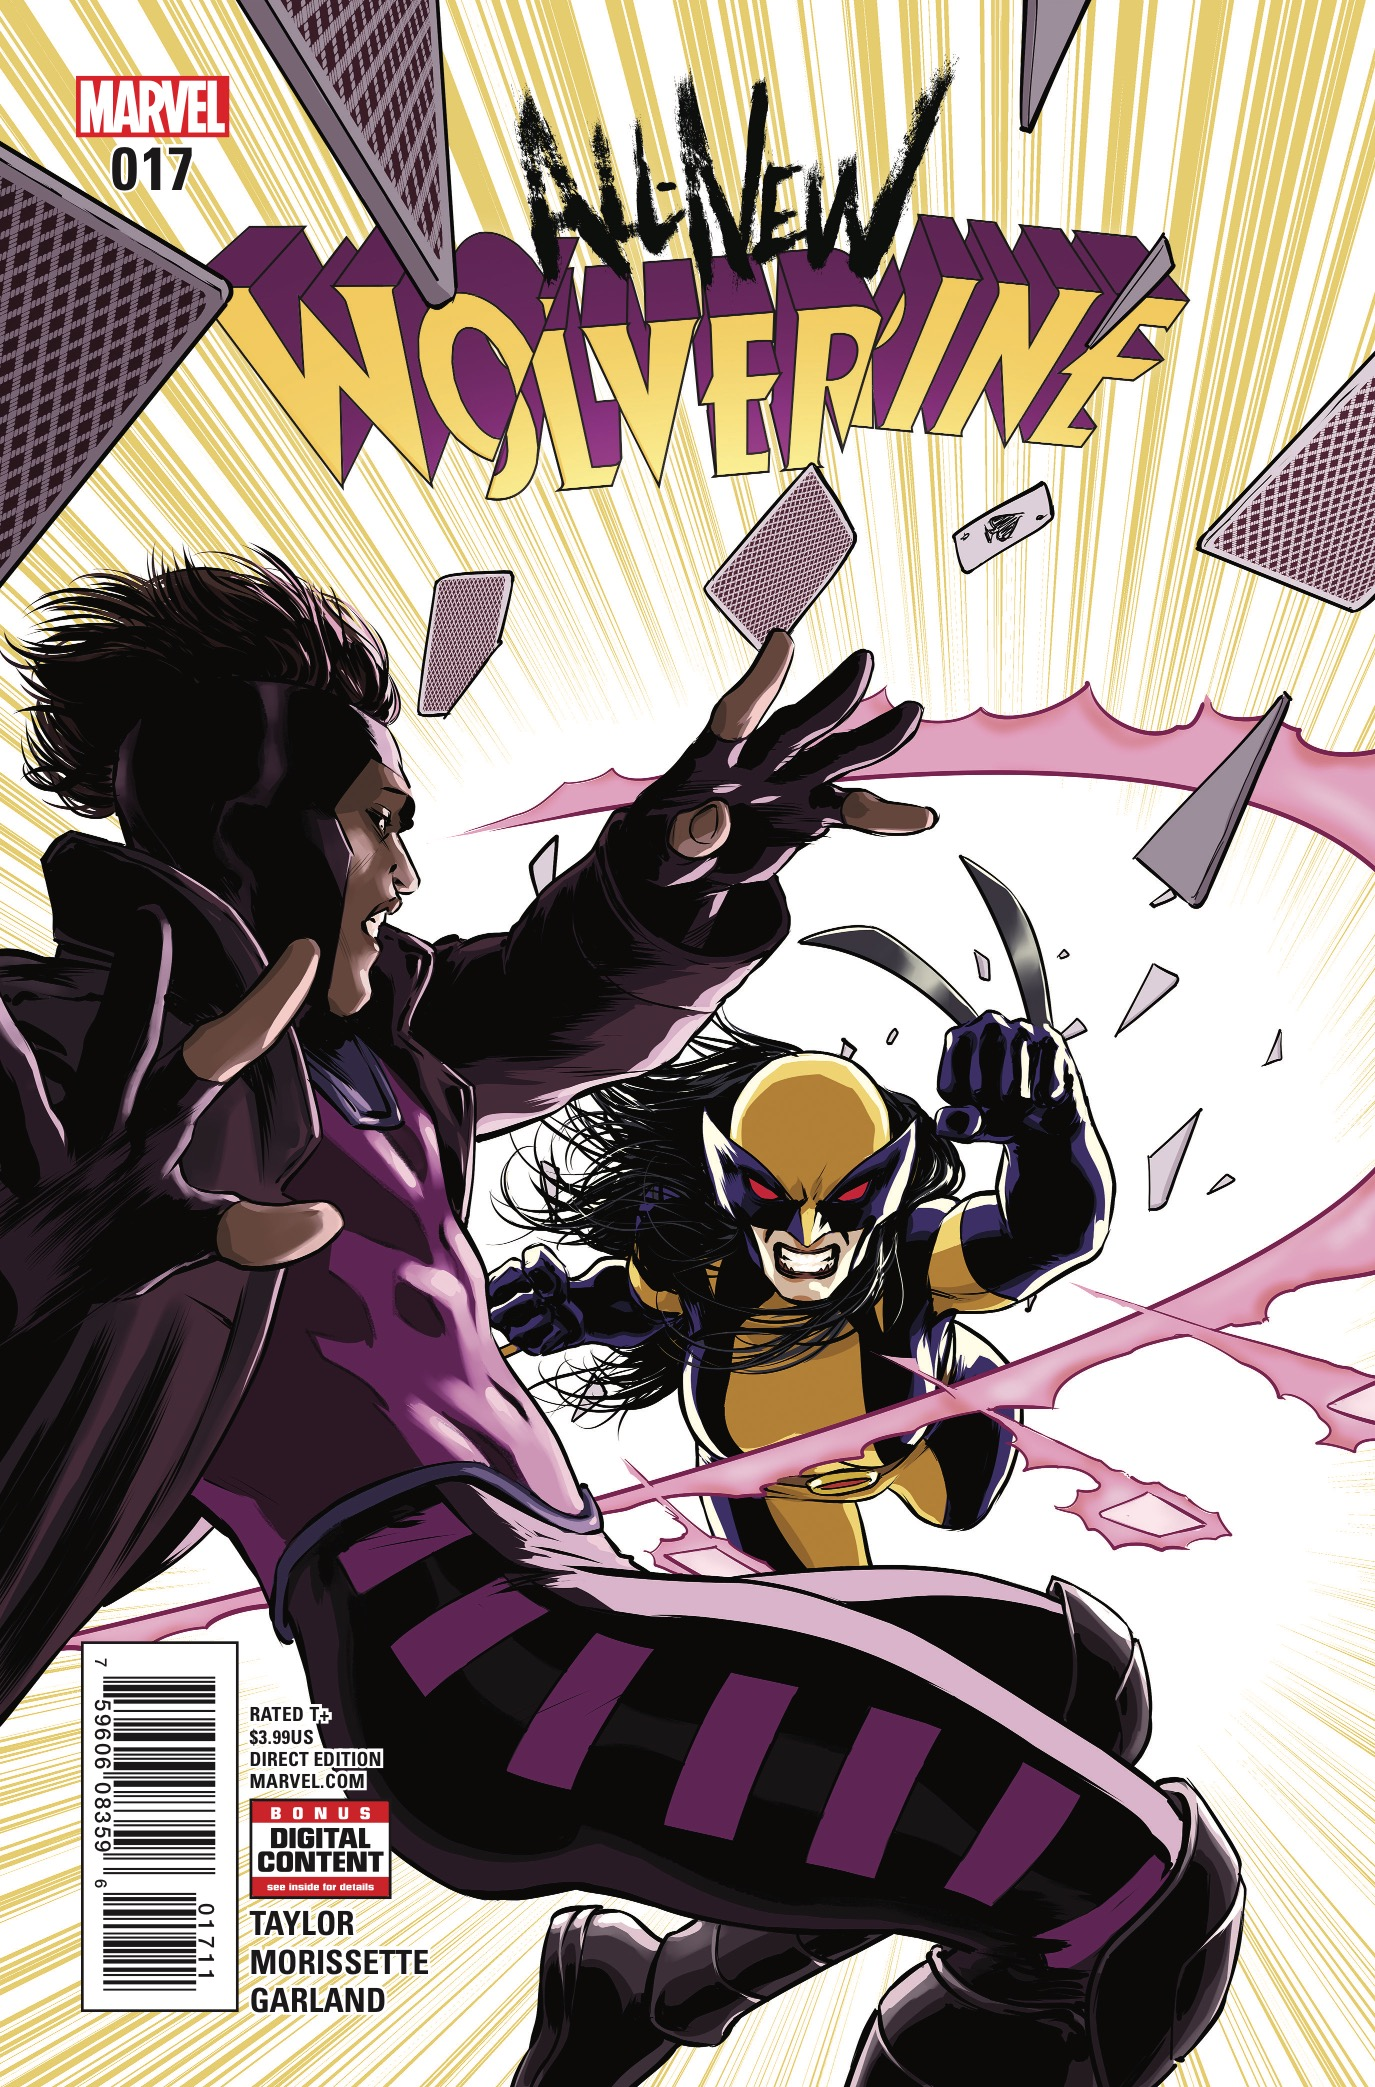 Marvel Preview: All-New Wolverine #17